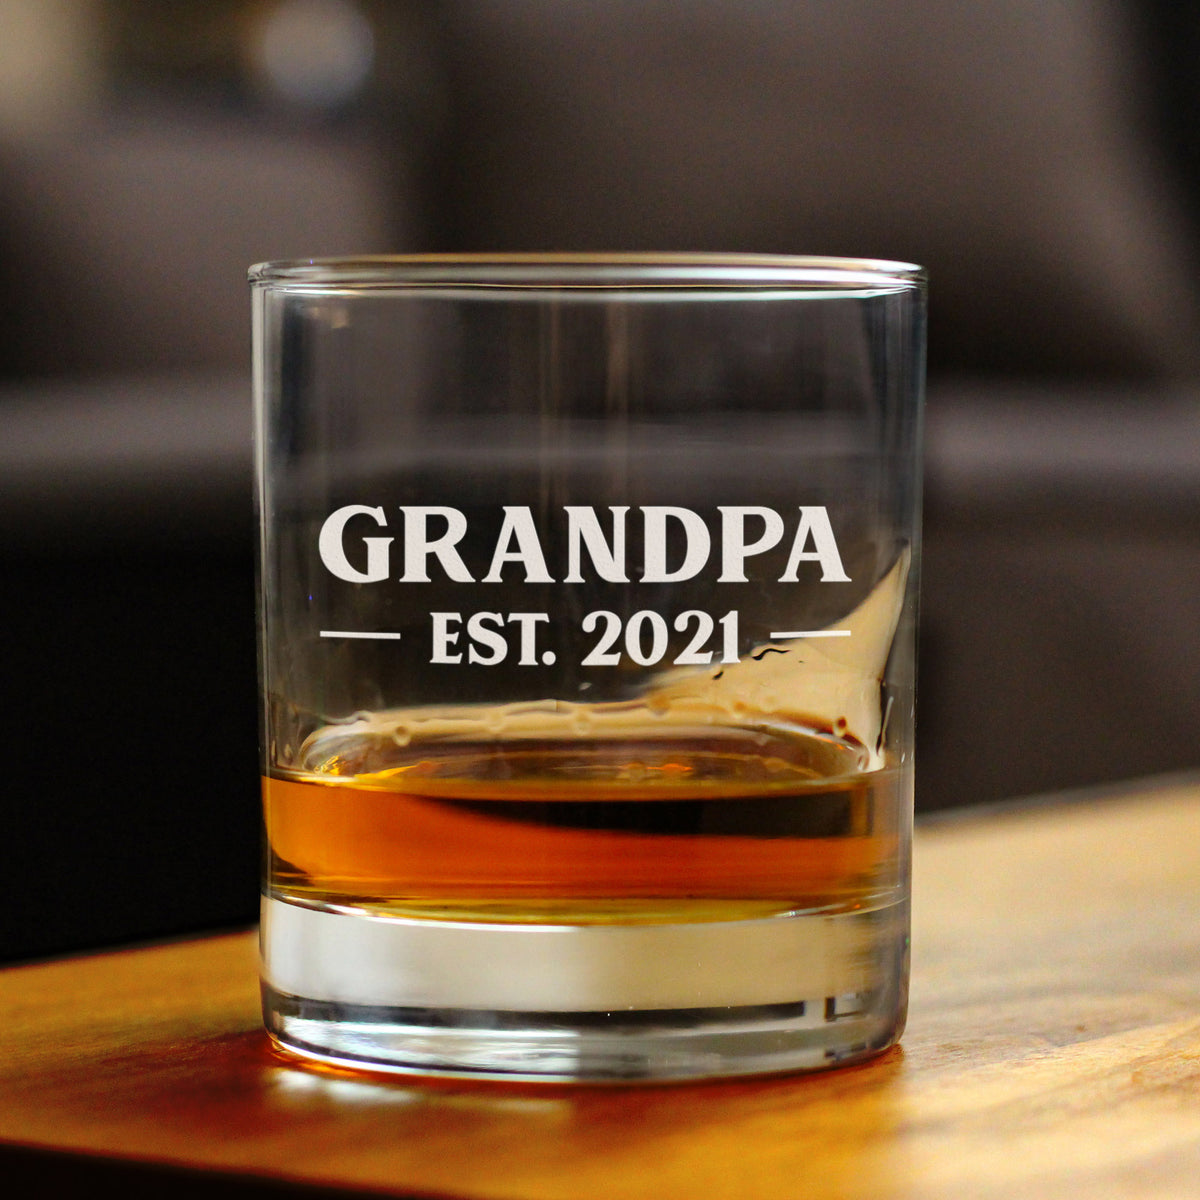 Grandpa Est. 2021 - Bold - 10 Ounce Rocks Glass